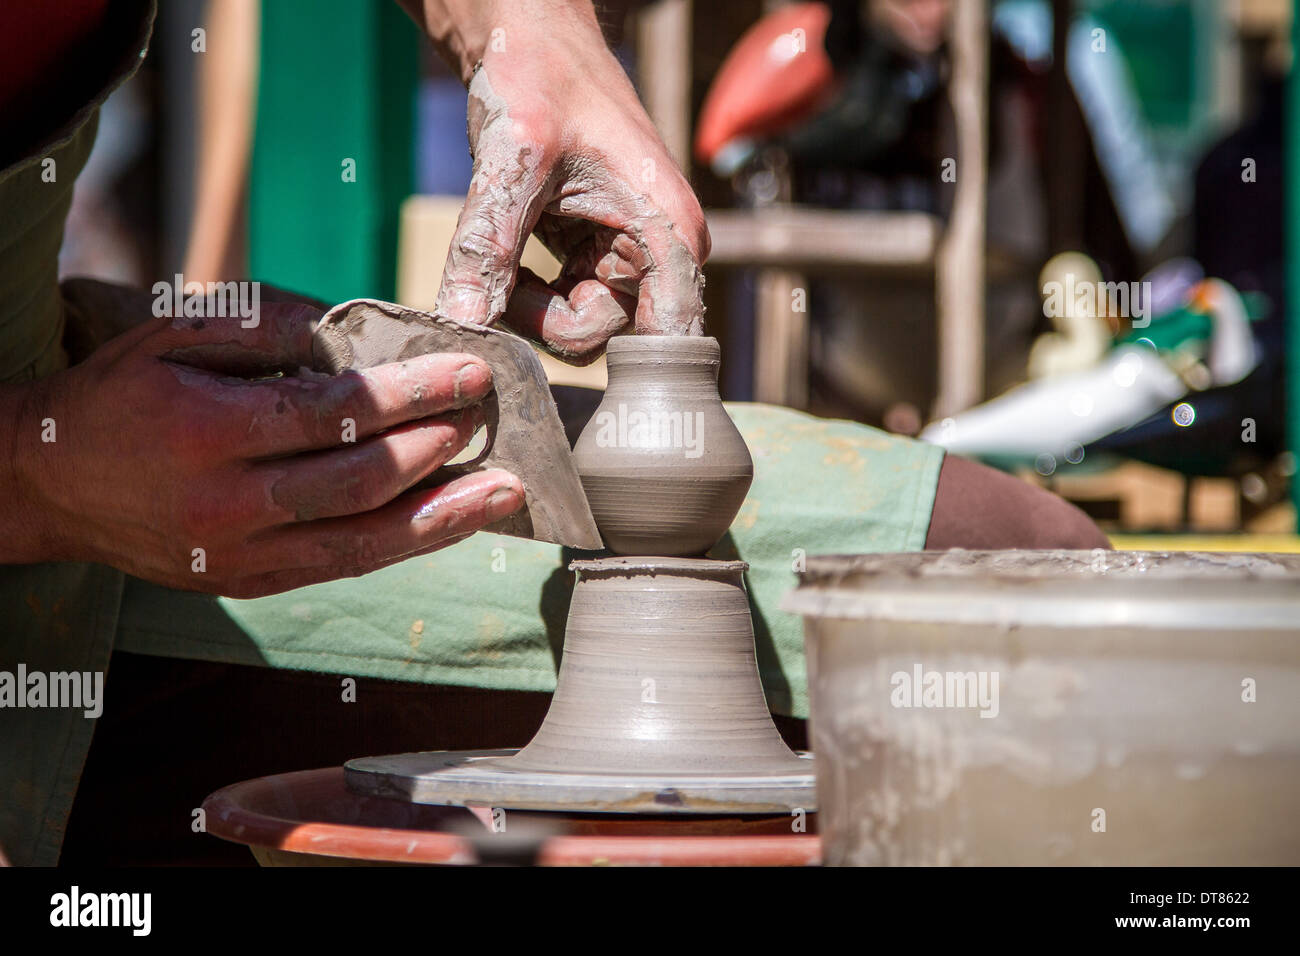 Public shaping handmade pottery on the streets of Warsaw, Poland - Stock Image